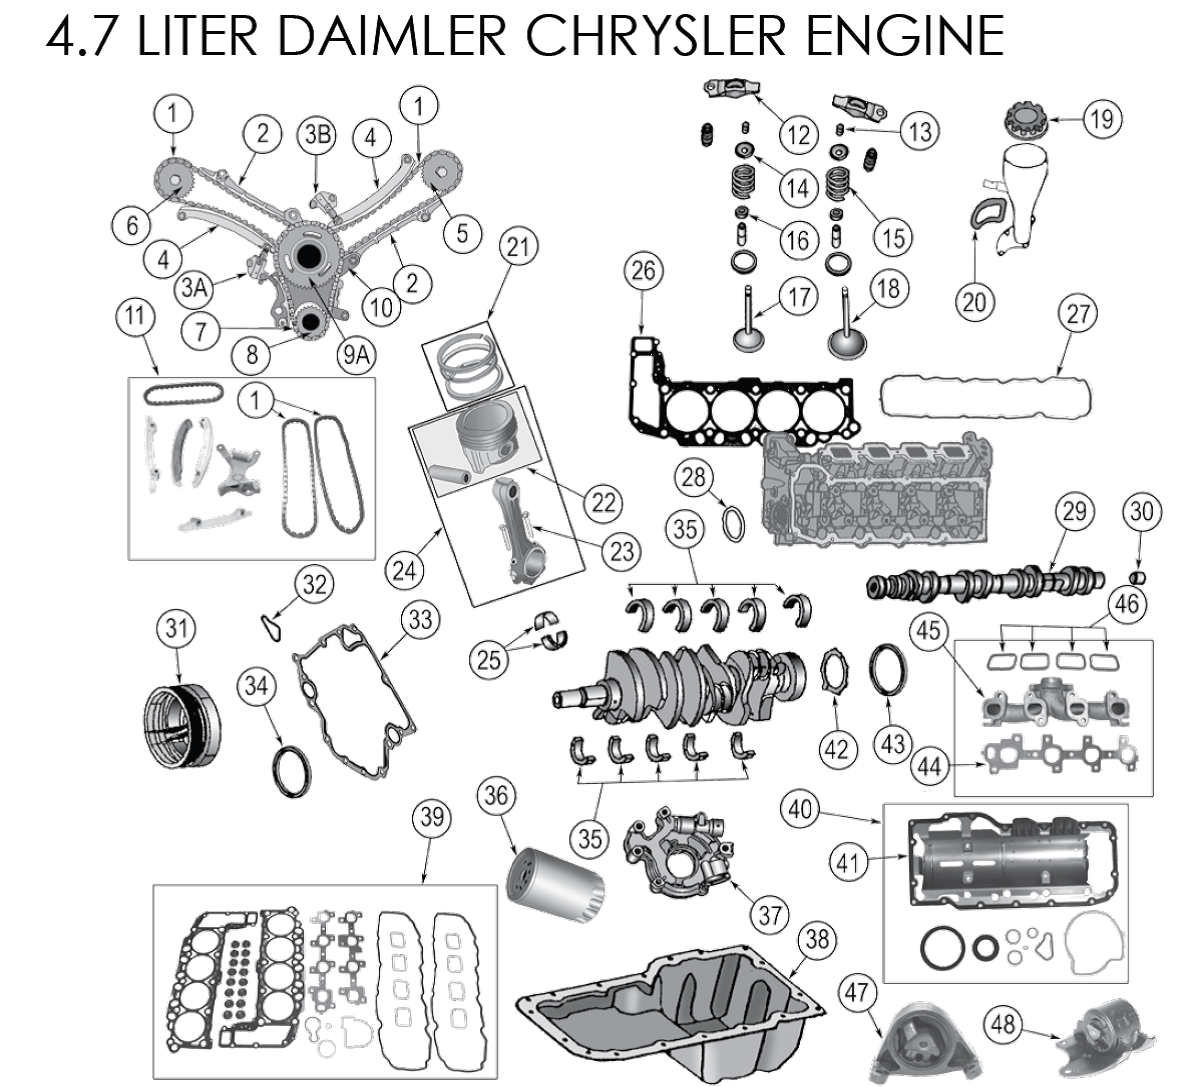 jeep 4 7 engine diagram another blog about wiring diagram \u2022 2000 chevy s10 wiring diagram 4 7l engine diagram valve get free image about wiring